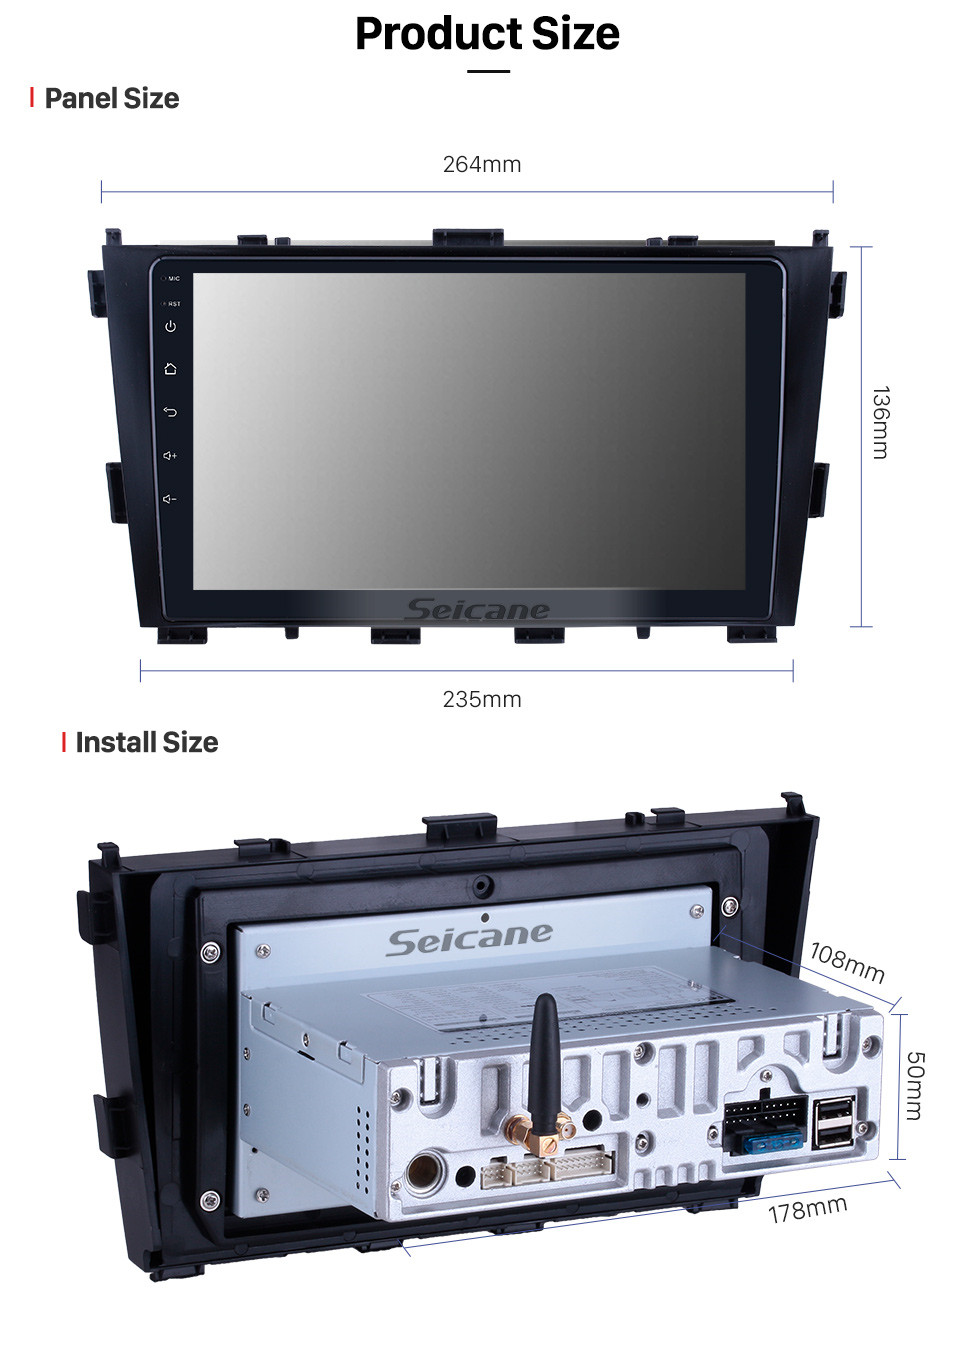 Seicane HD Touchscreen for 2014 Baic Huansu Radio Android 10.0 9 inch GPS Navigation System Bluetooth Carplay support TPMS 1080P Video